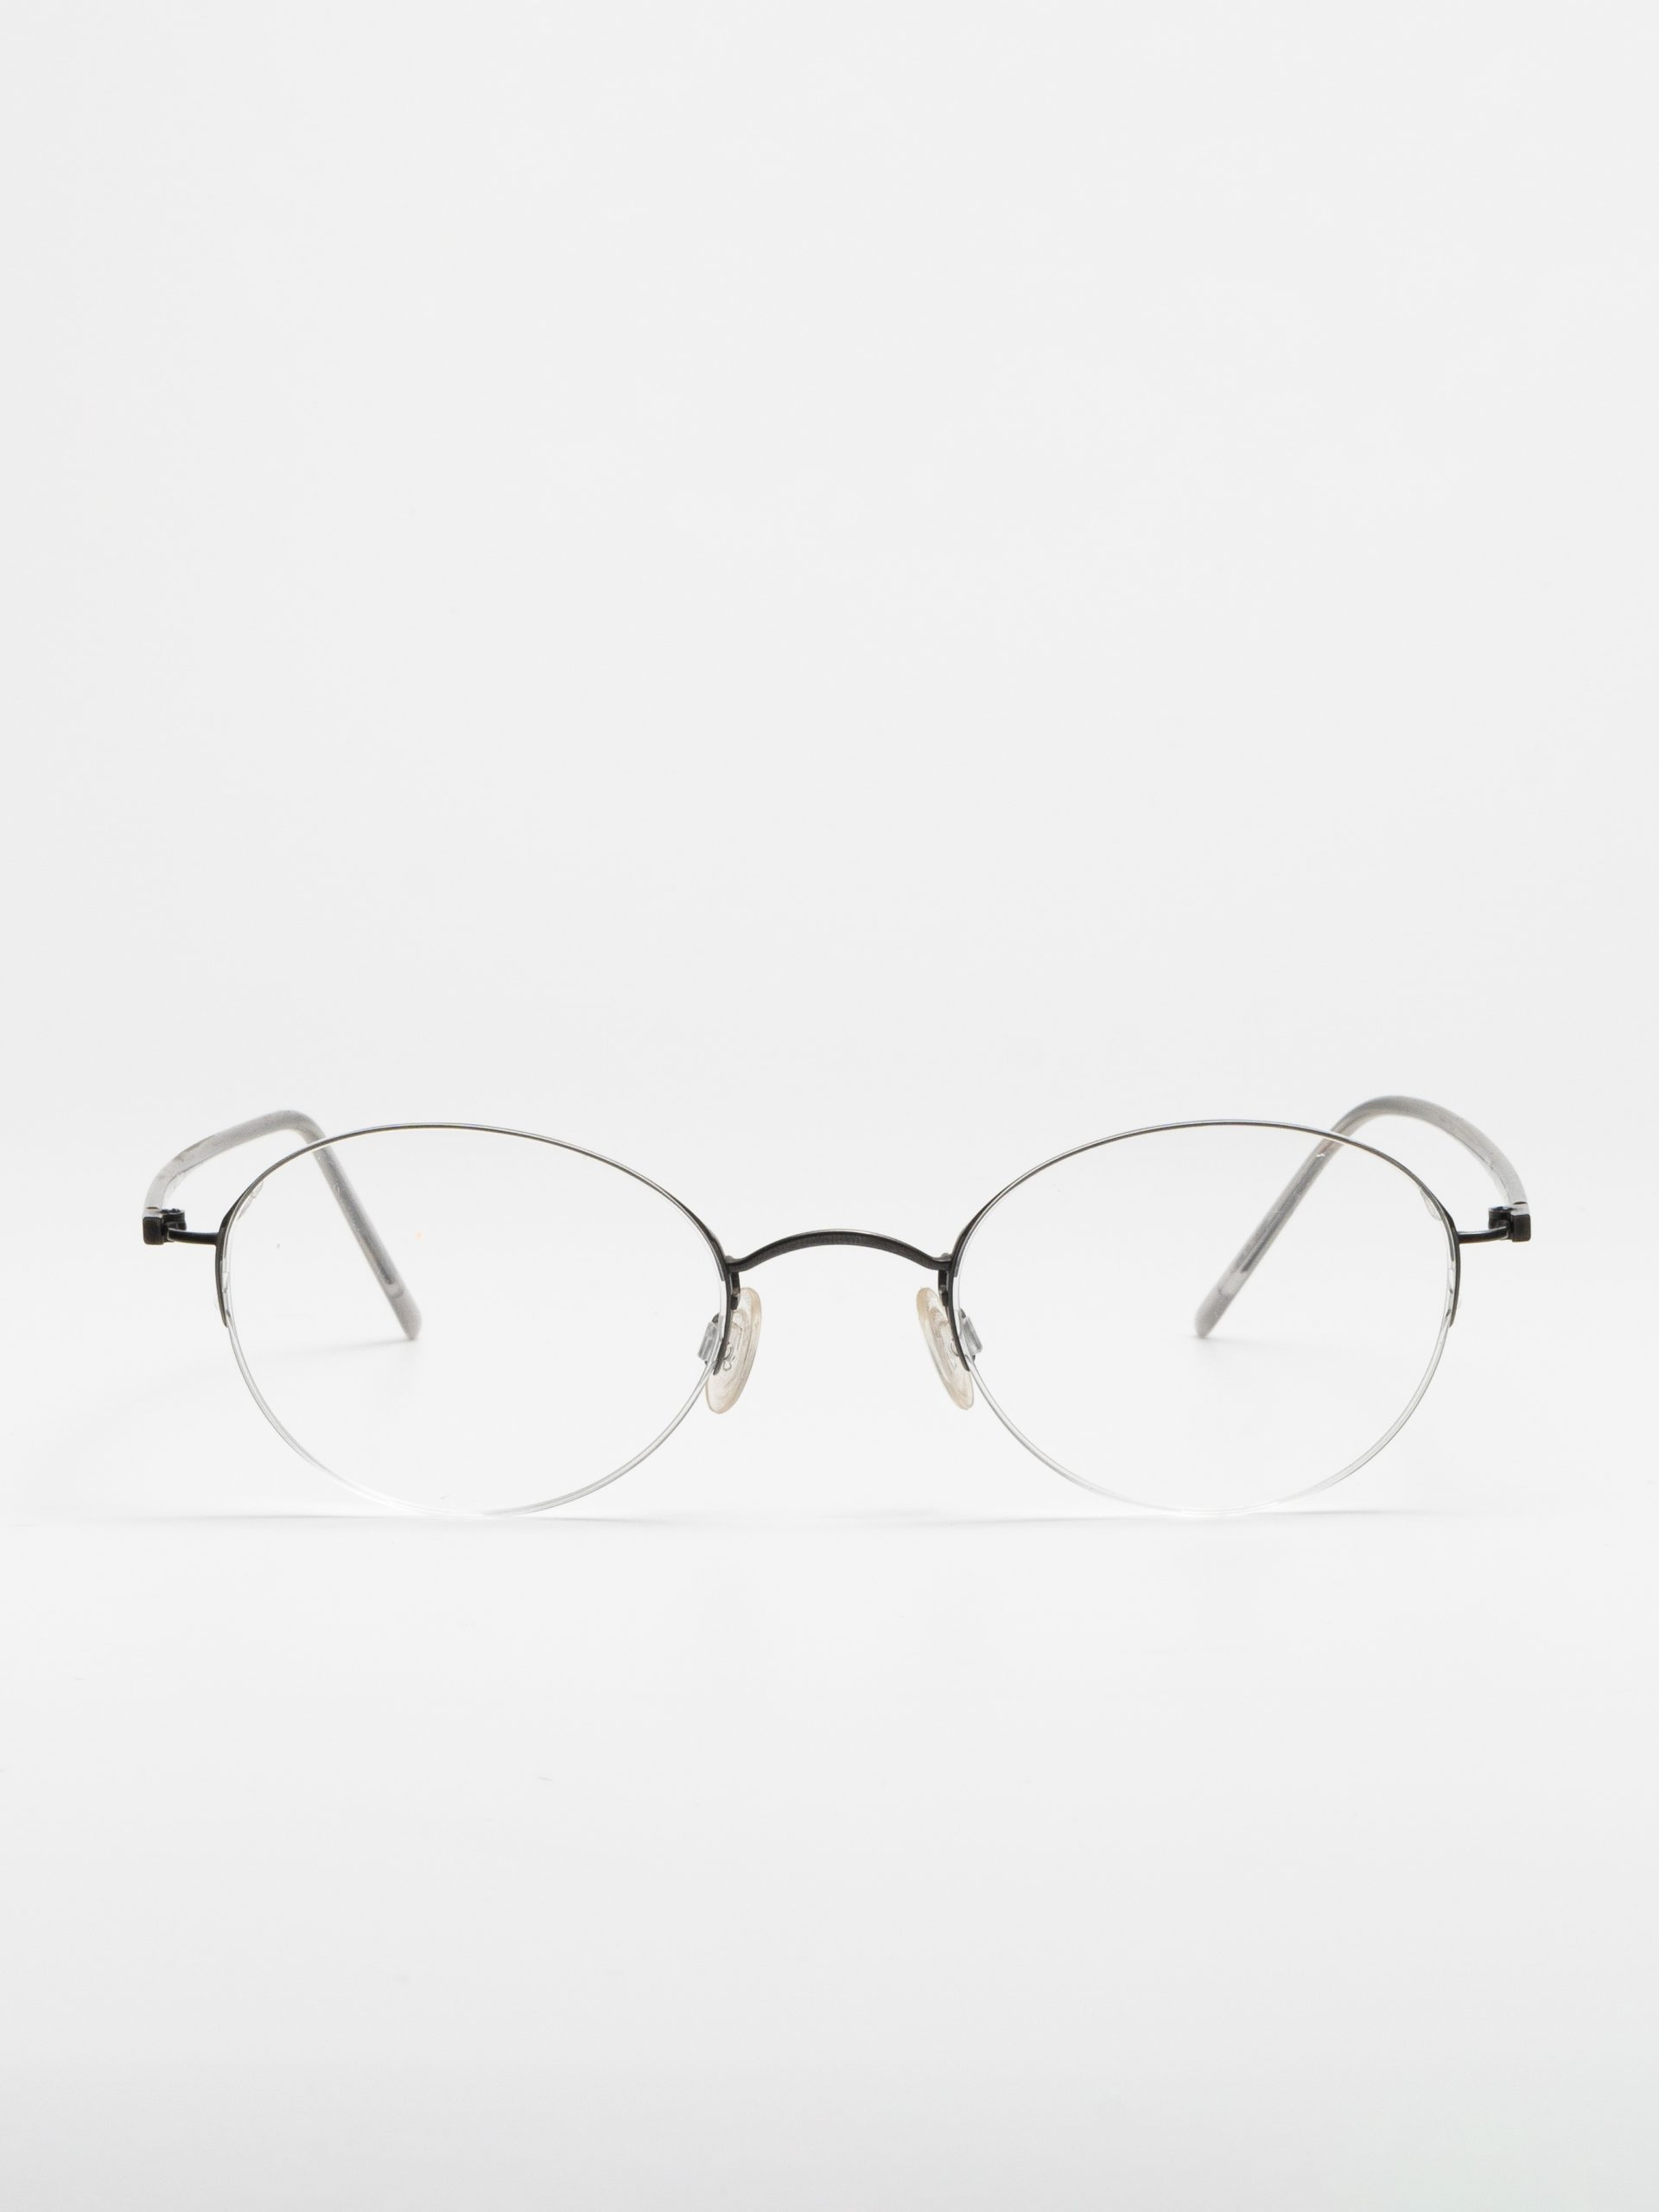 Gong kinh RODENSTOCK R7052 B